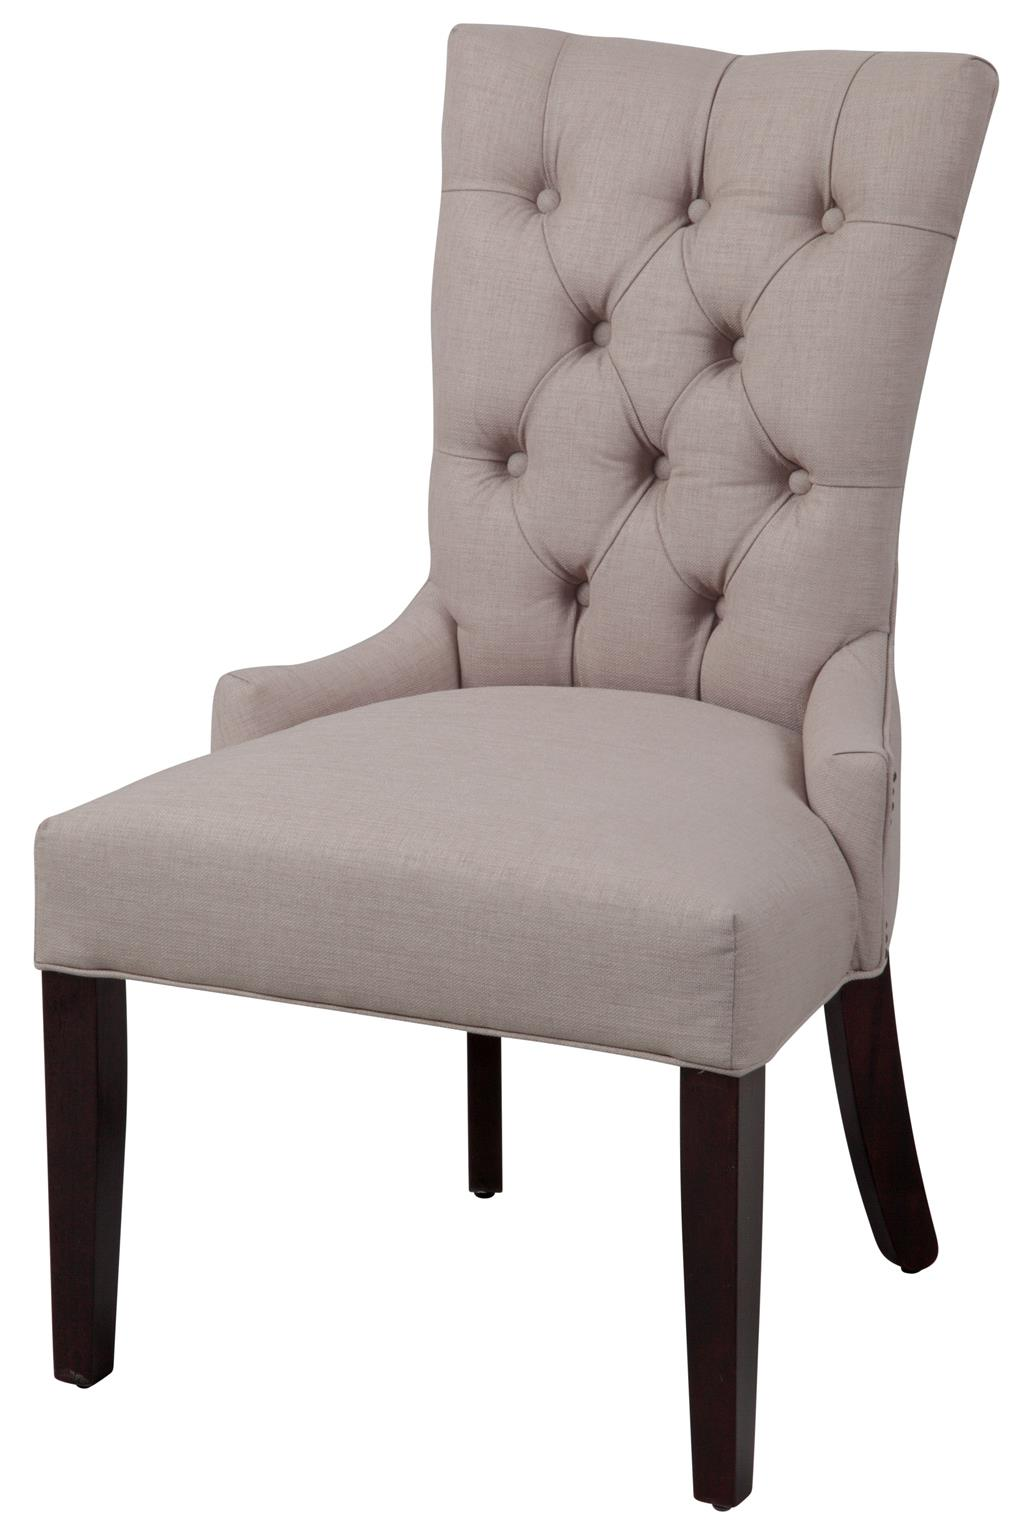 Parson Chairs Button Back Parson Chair by CMI at Johnny Janosik